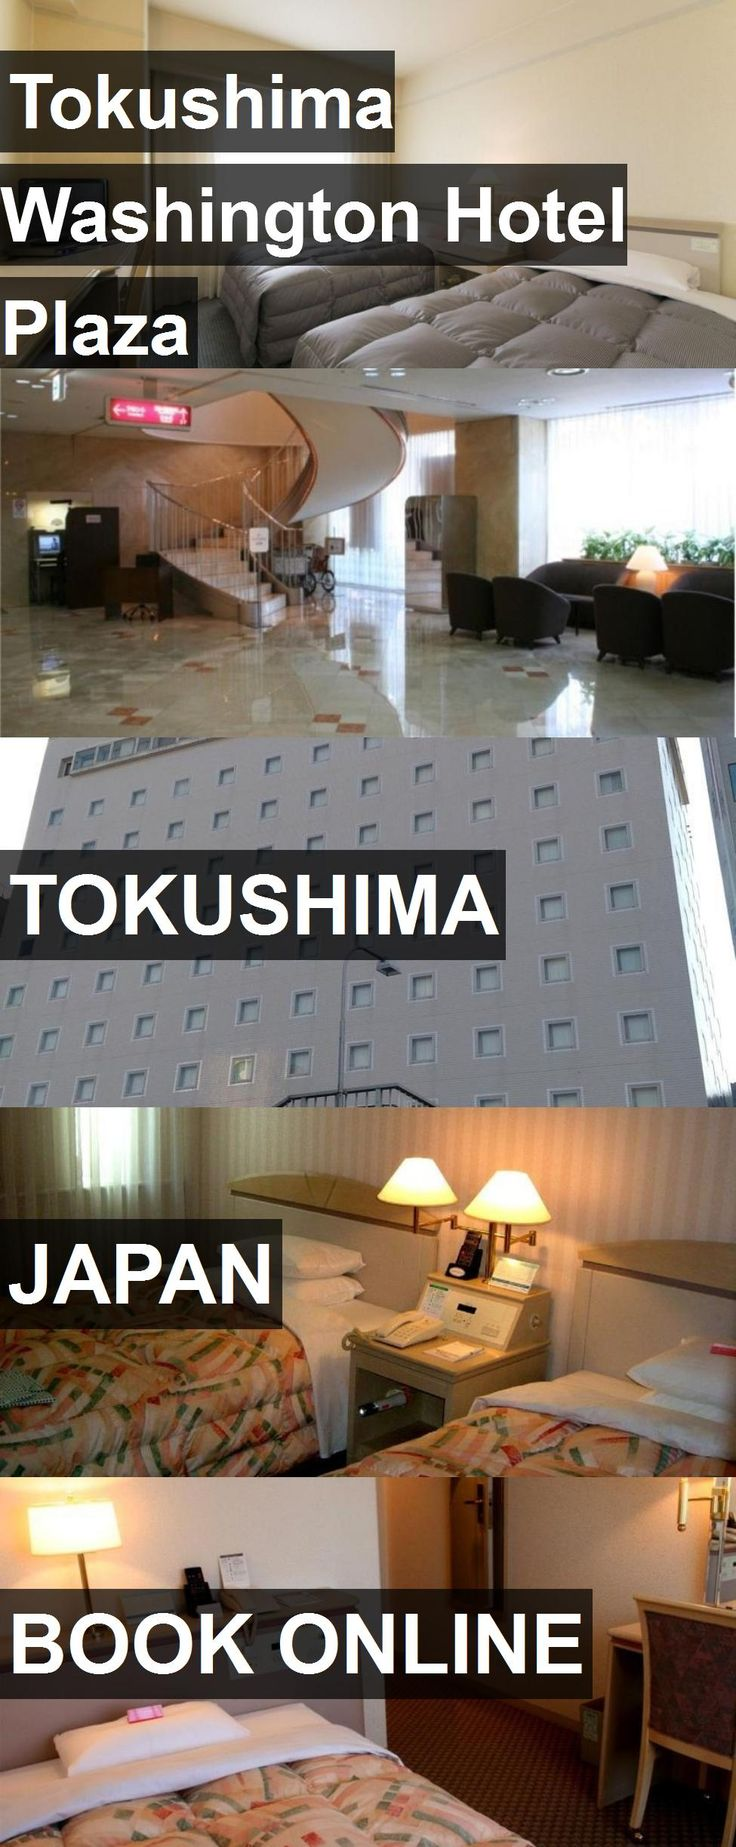 Tokushima Washington Hotel Plaza in Tokushima, Japan. For more information, photos, reviews and best prices please follow the link. #Japan #Tokushima #travel #vacation #hotel